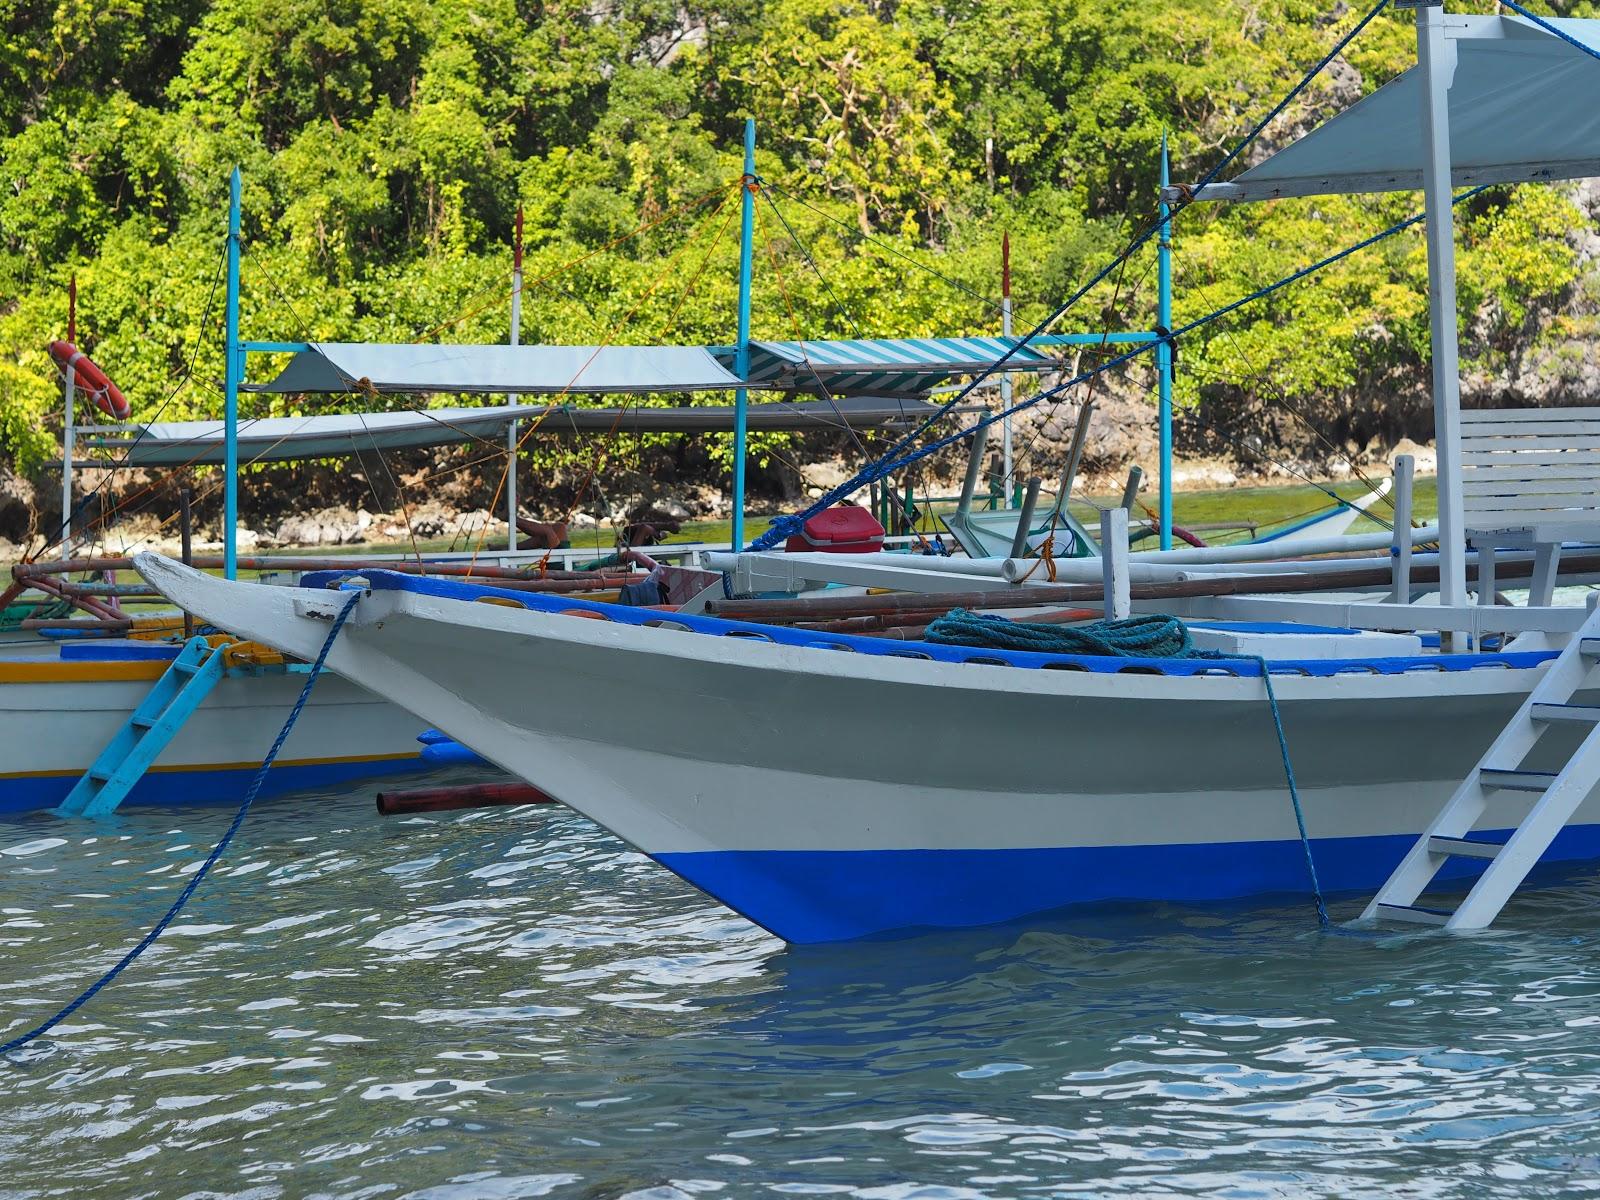 boat in water, philippines